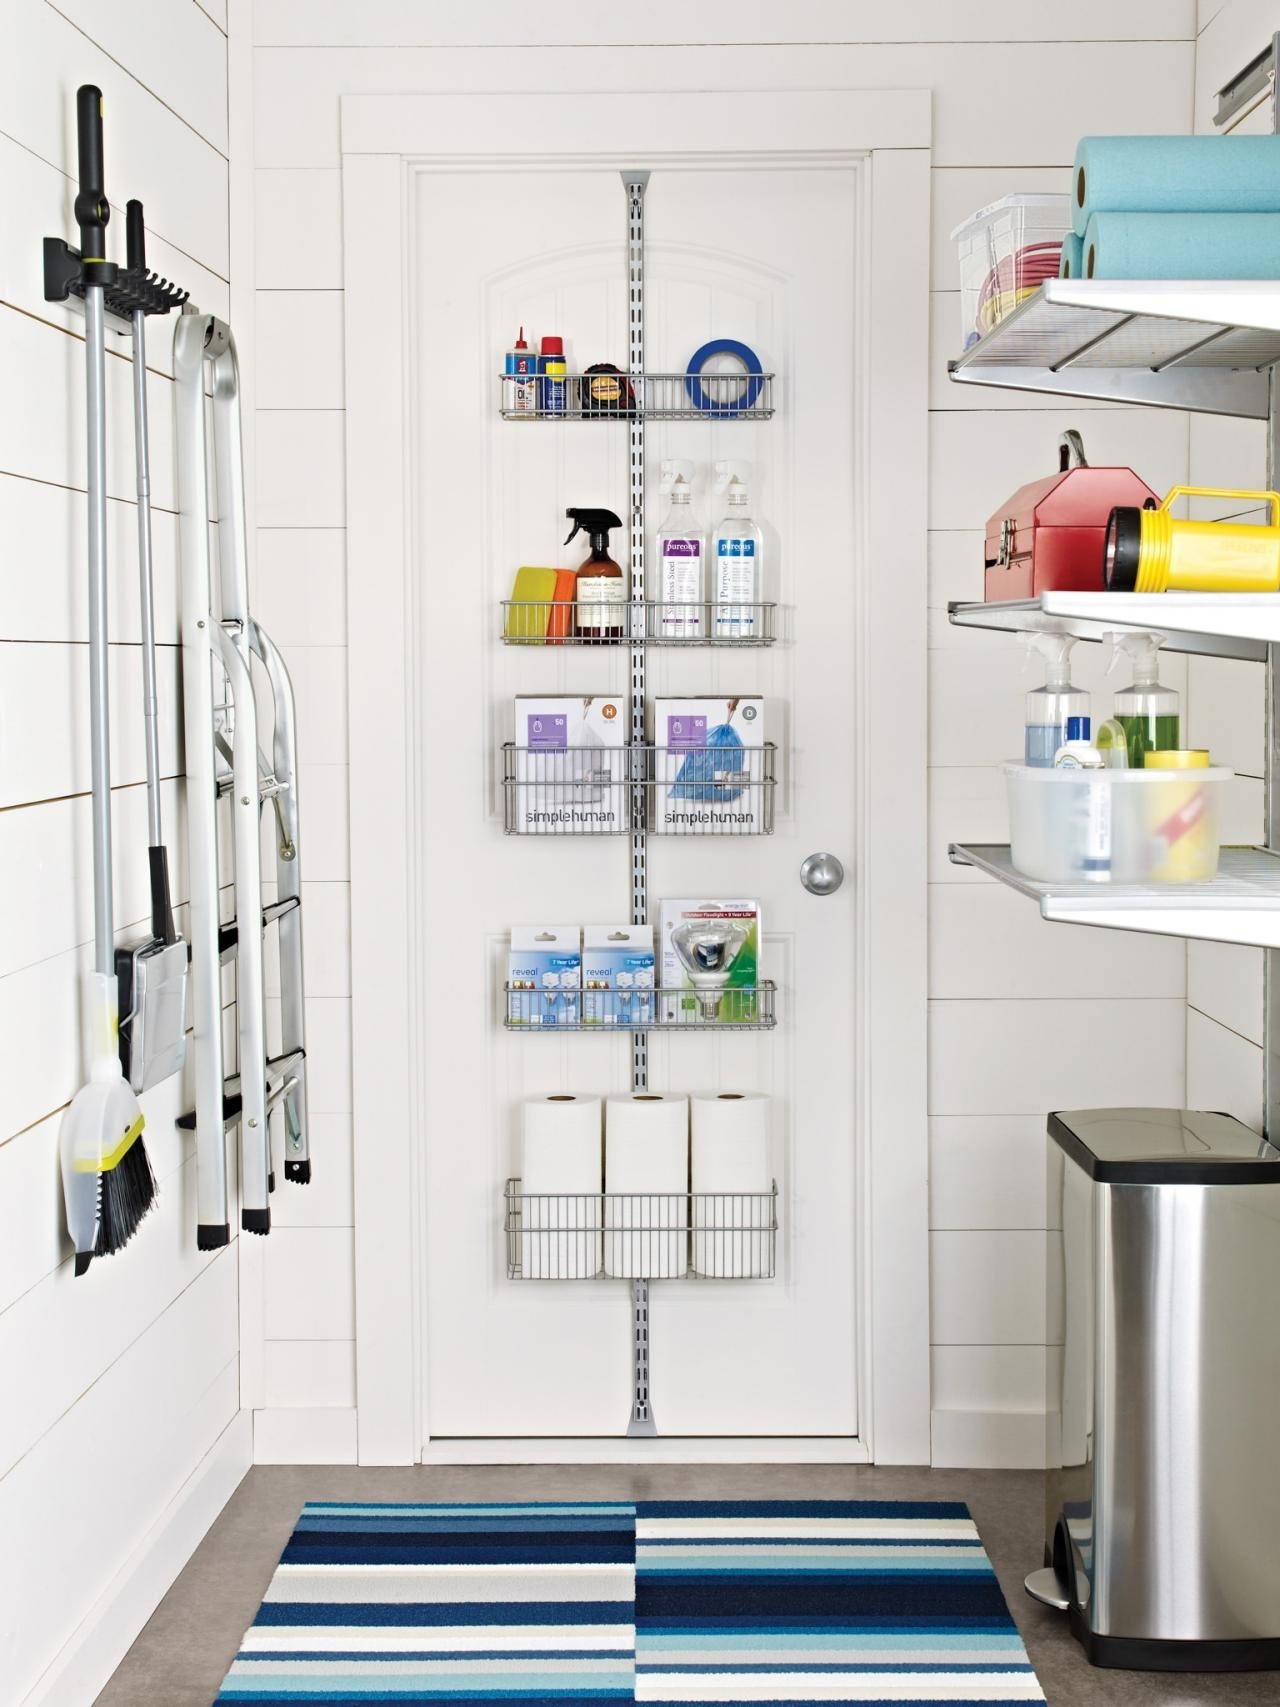 10 Great Small Laundry Room Storage Ideas %name 2021